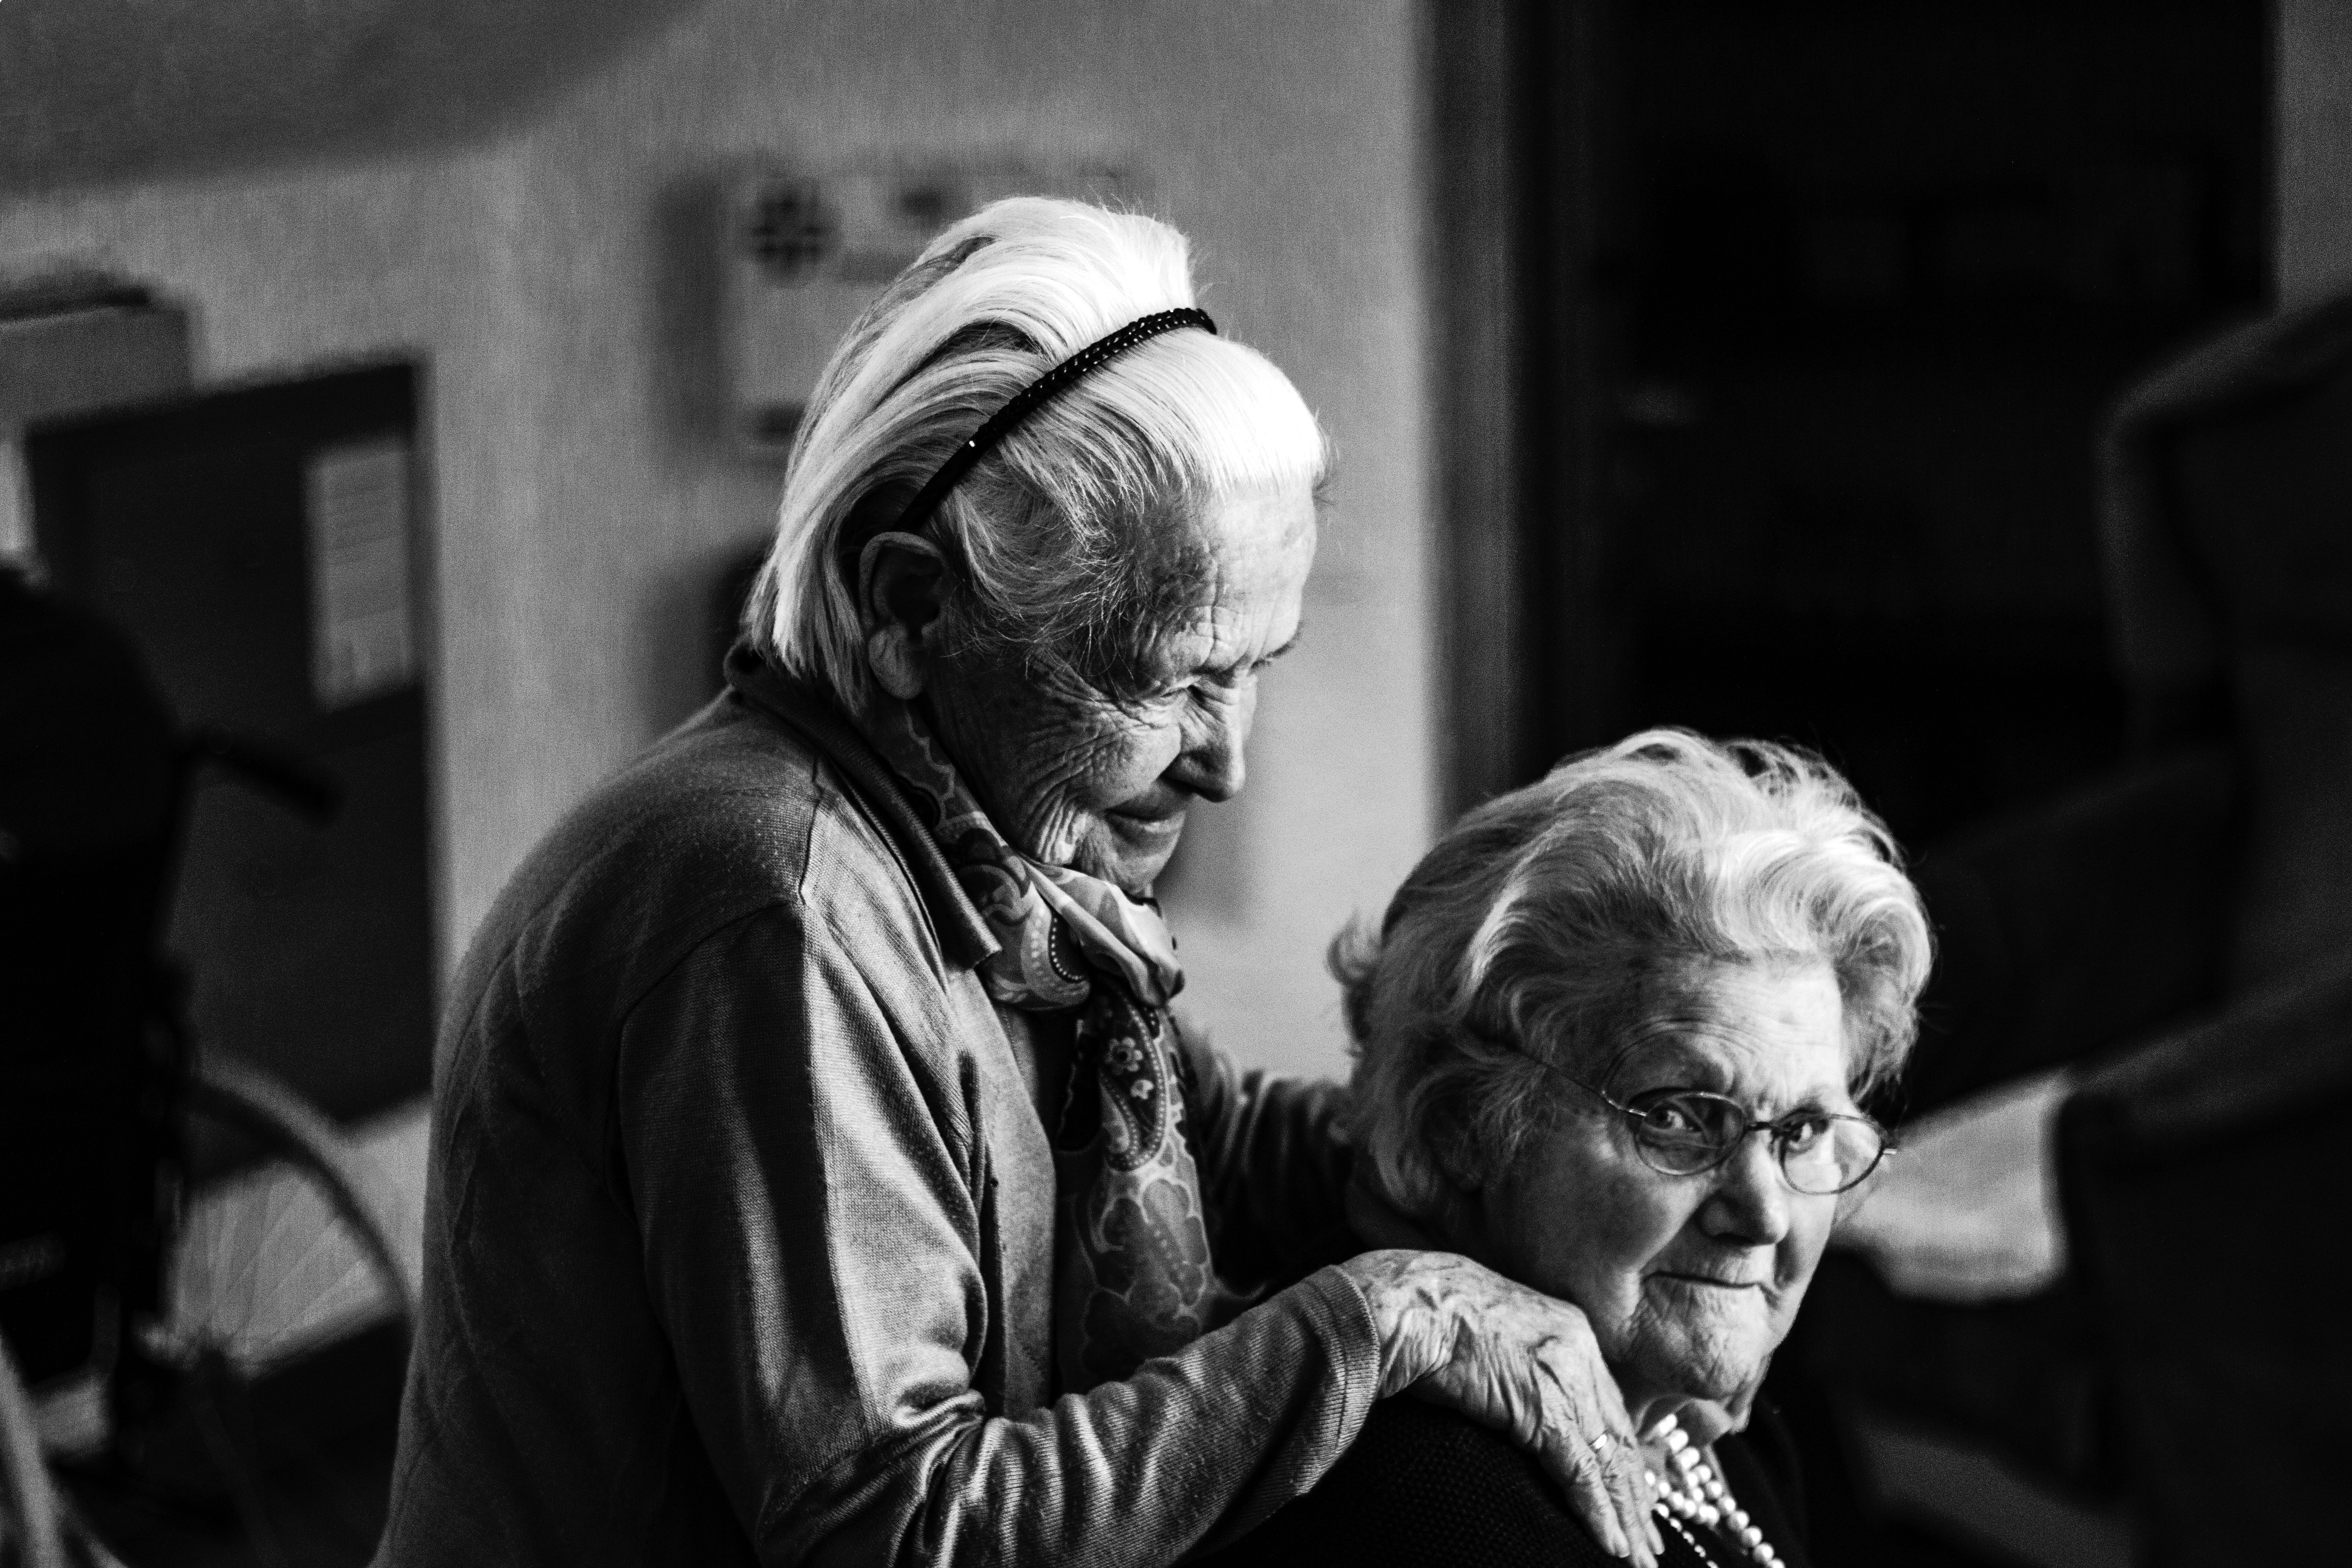 Forty percent of dementia cases could be prevented or delayed by targeting 12 risk factors throughout life